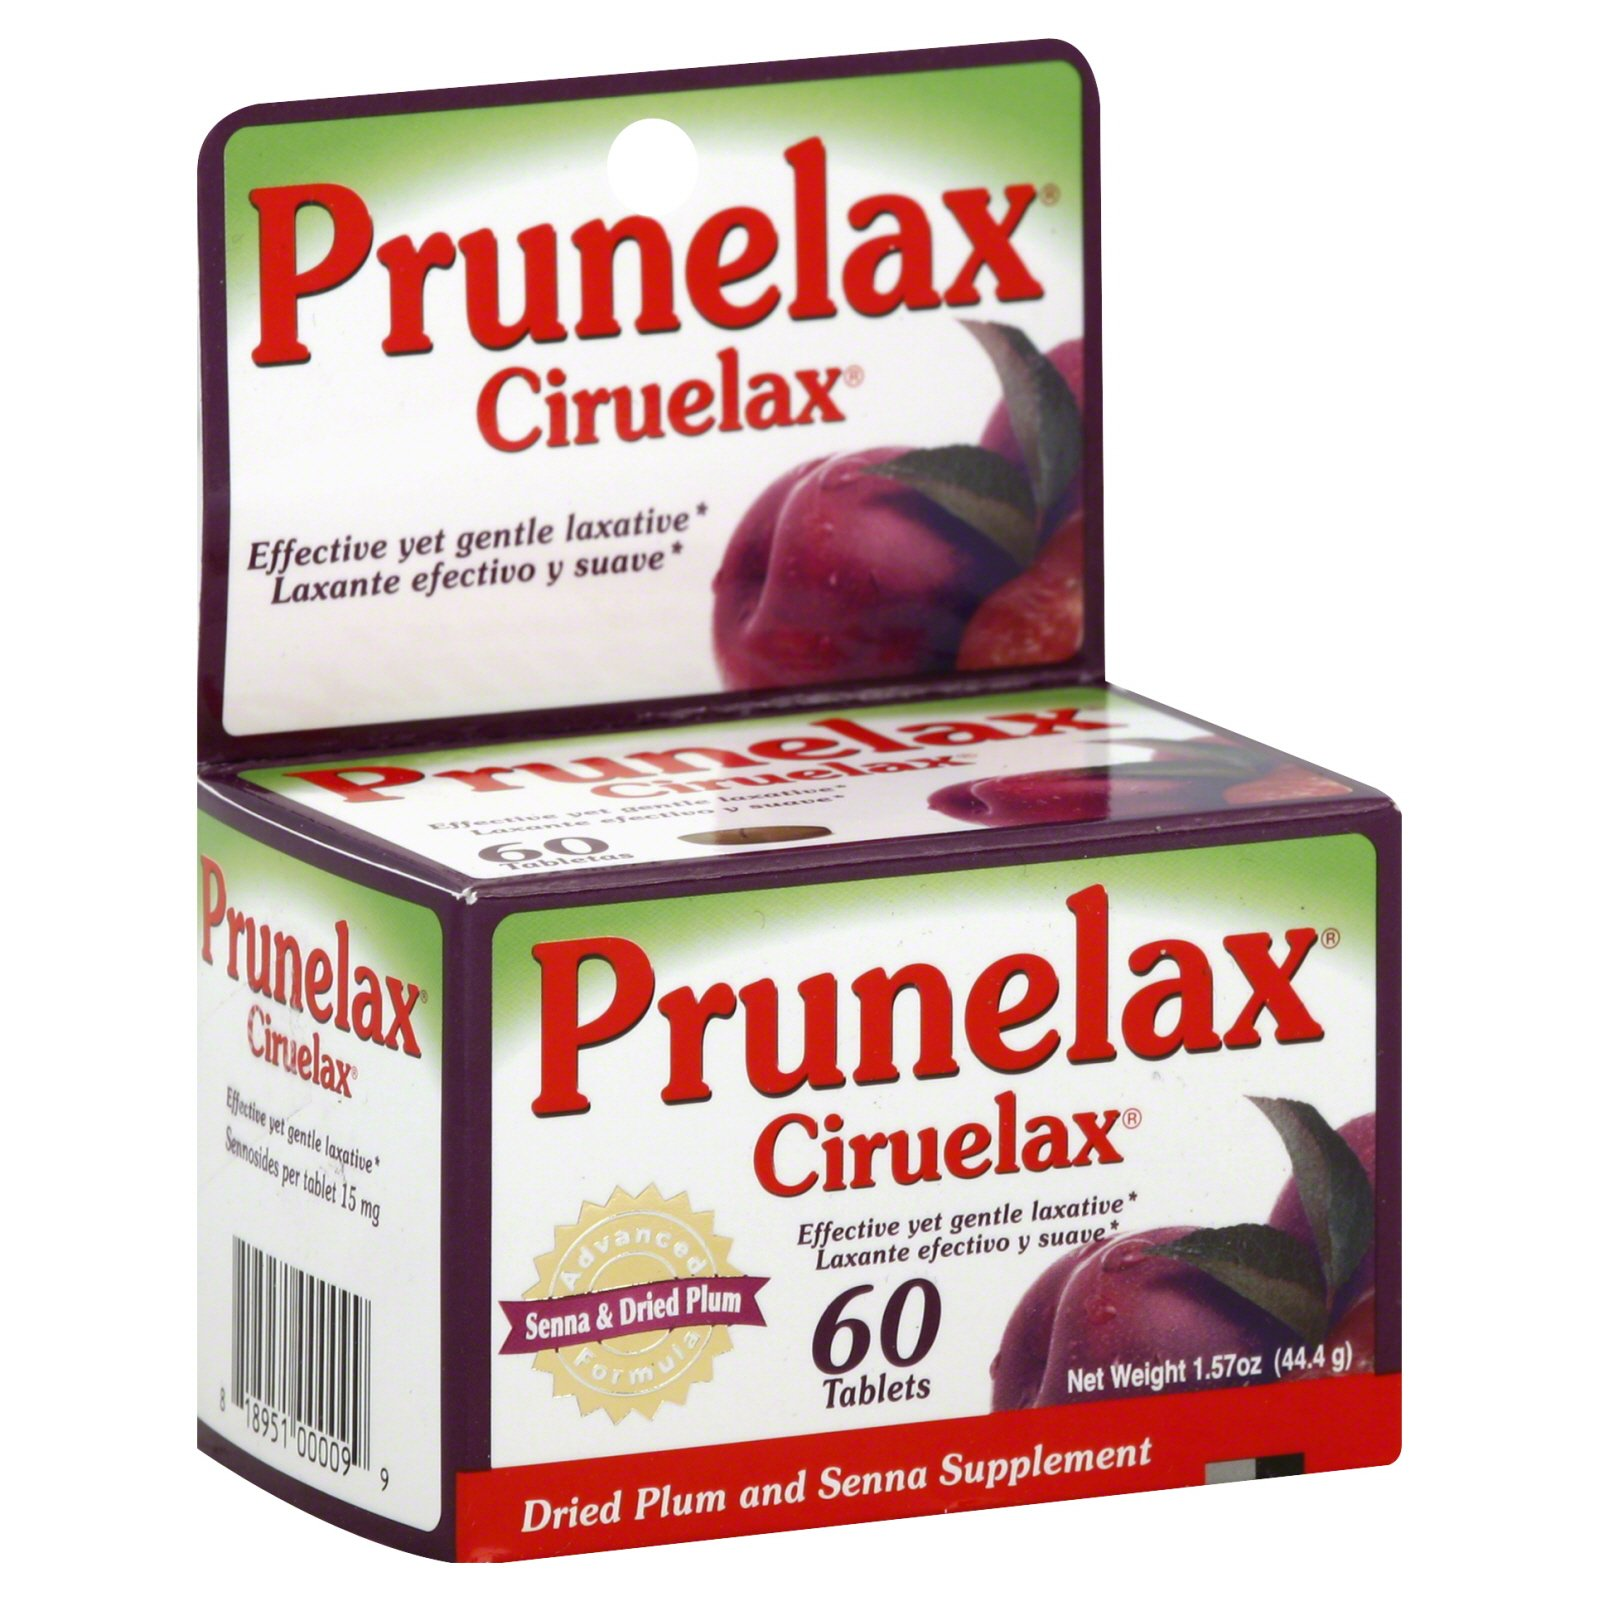 Amazon.com: Prunelax Ciruelax Laxative Tabs, 60 ea (Pack of 3): Health & Personal Care